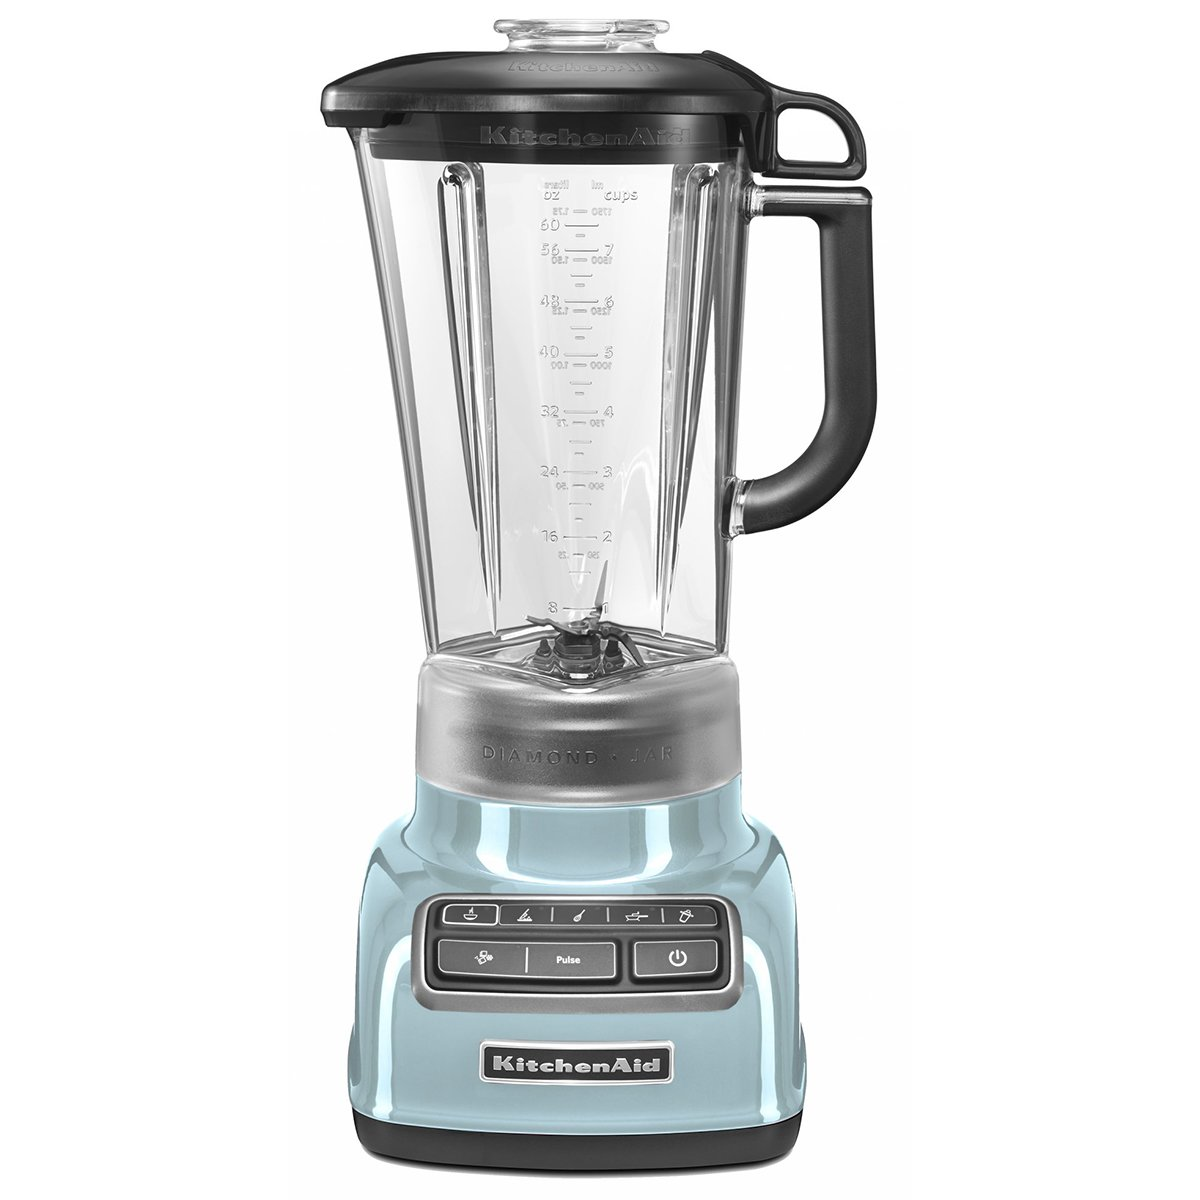 New Kitchenaid 5ksb1586aaz Blender Ebay